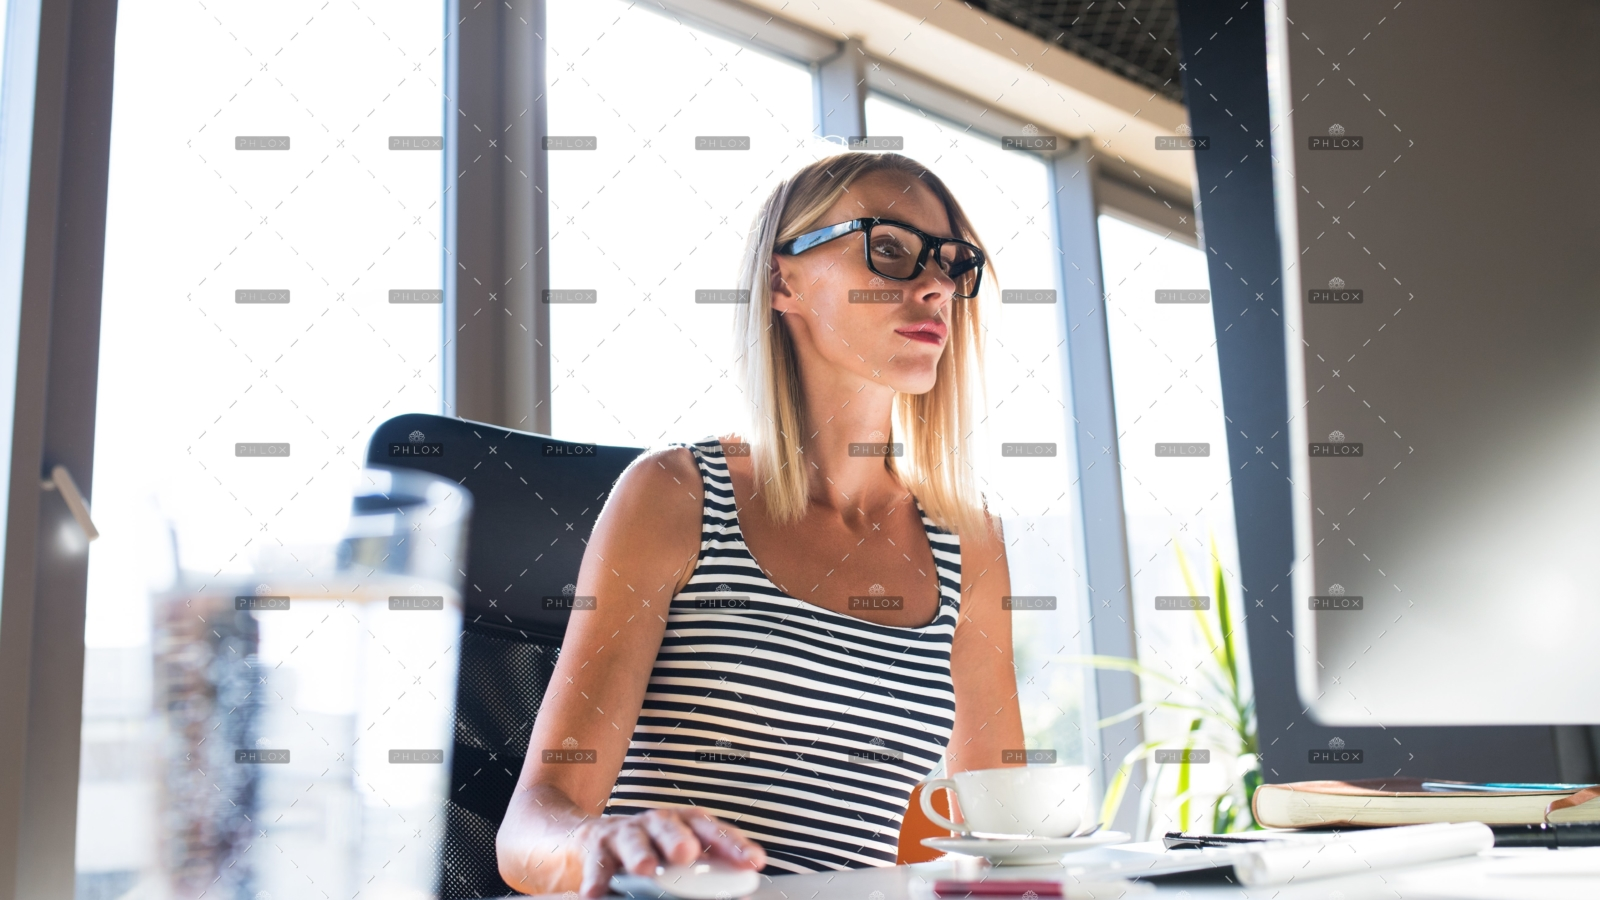 demo-attachment-838-businesswoman-with-computer-in-her-office-working-PV9JHZE